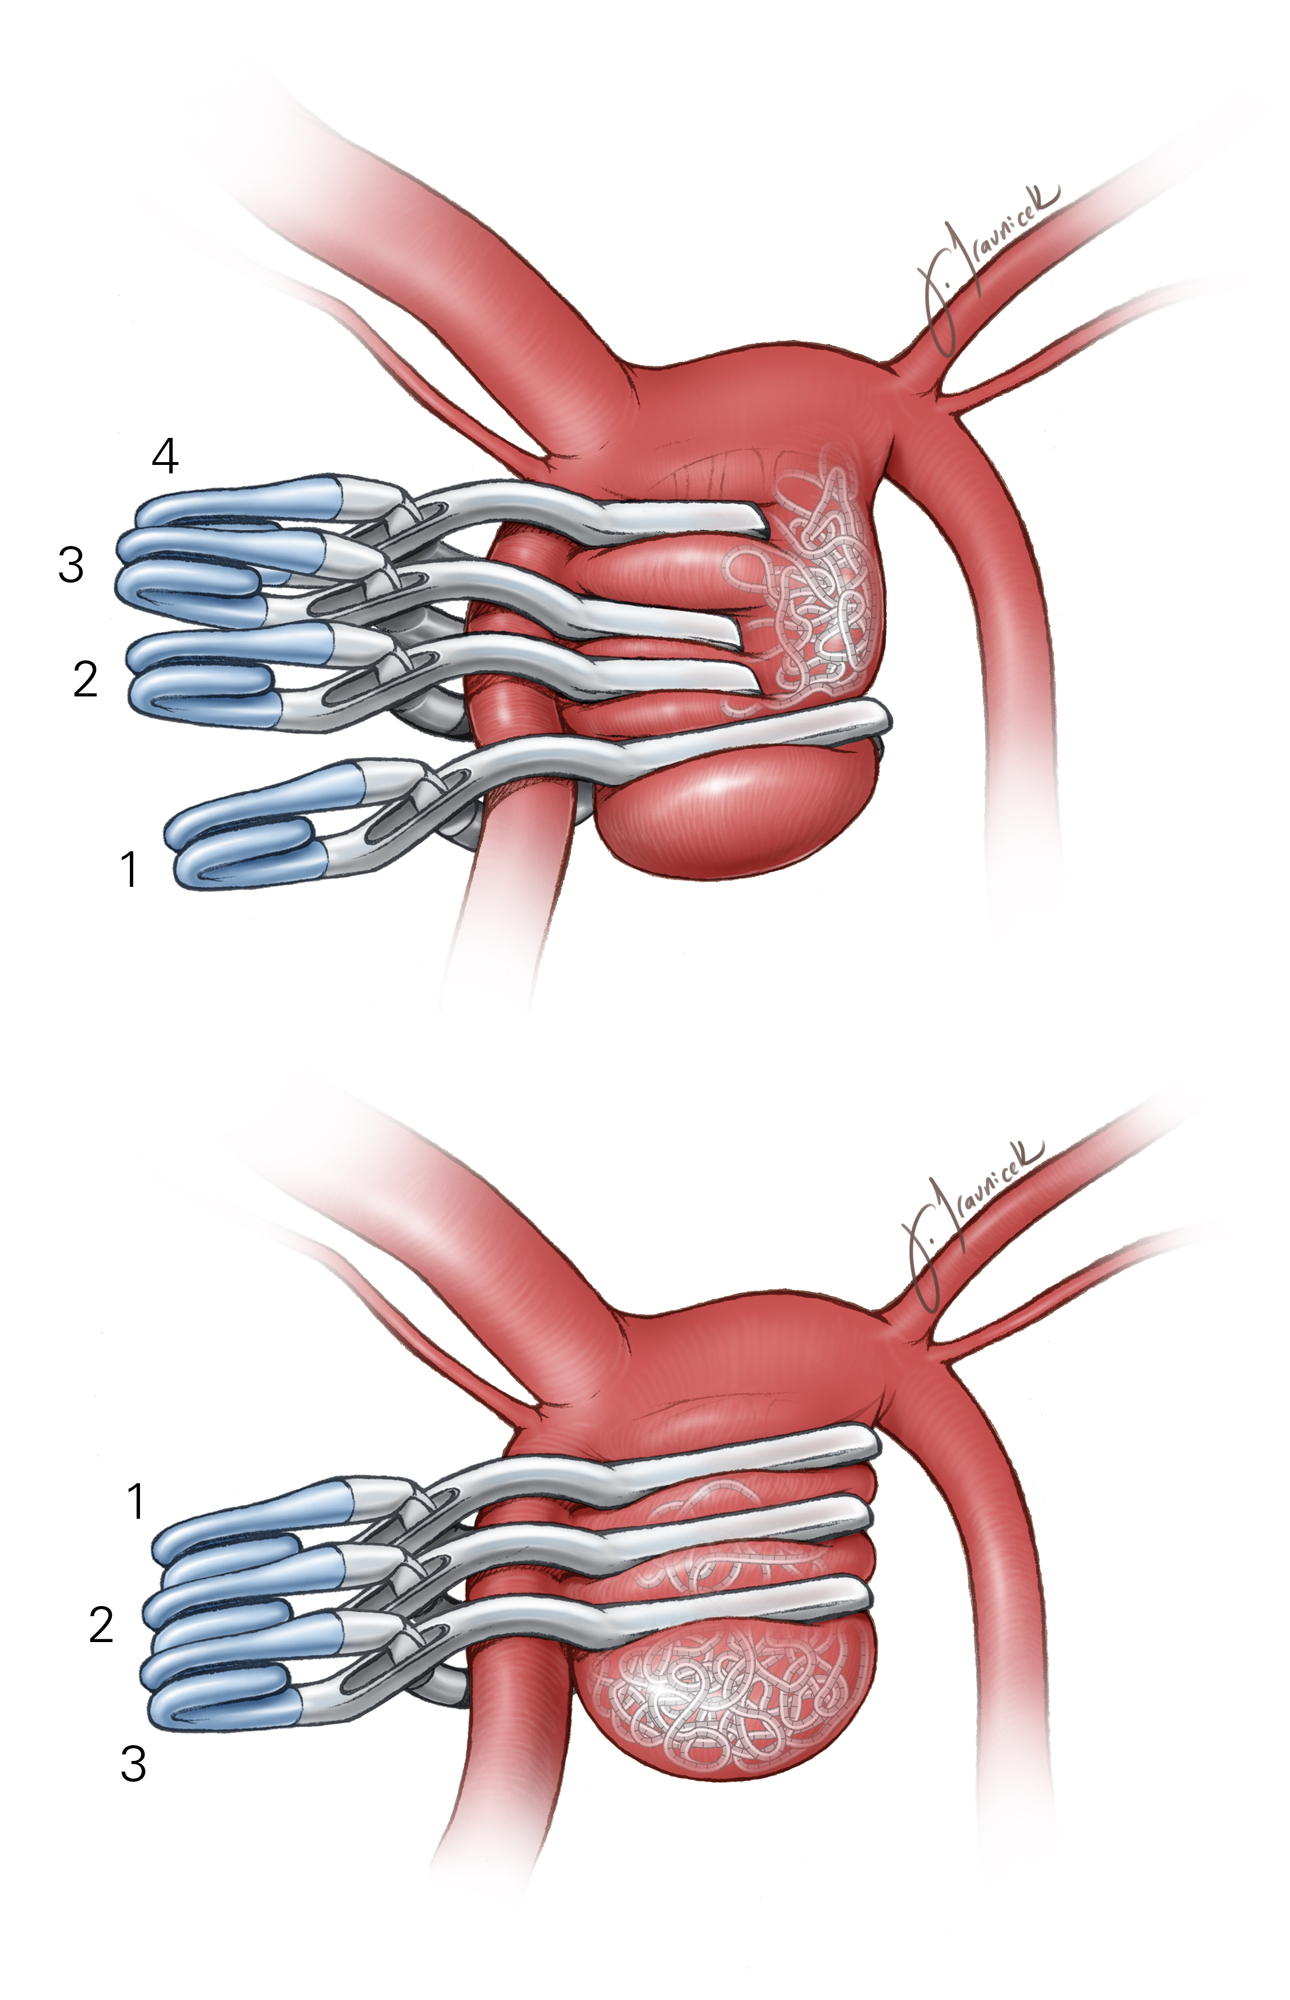 Figure 1: Clipping of an ACoA aneurysm after a prior partial coiling attempt is illustrated. Short fenestrated clips are stacked to trap the coiled material in the lateral section of the aneurysm, and a longer distal clip occludes the remaining patent dome. These clips are placed in order from 1 to 4 using an understacking method (top image). Three longer fenestrated clips are used to occlude the entire aneurysm using an overstacking method (bottom image). The coil material is pinched between the clip blades. Please see more details in the  Permanent Clip Application  chapter.